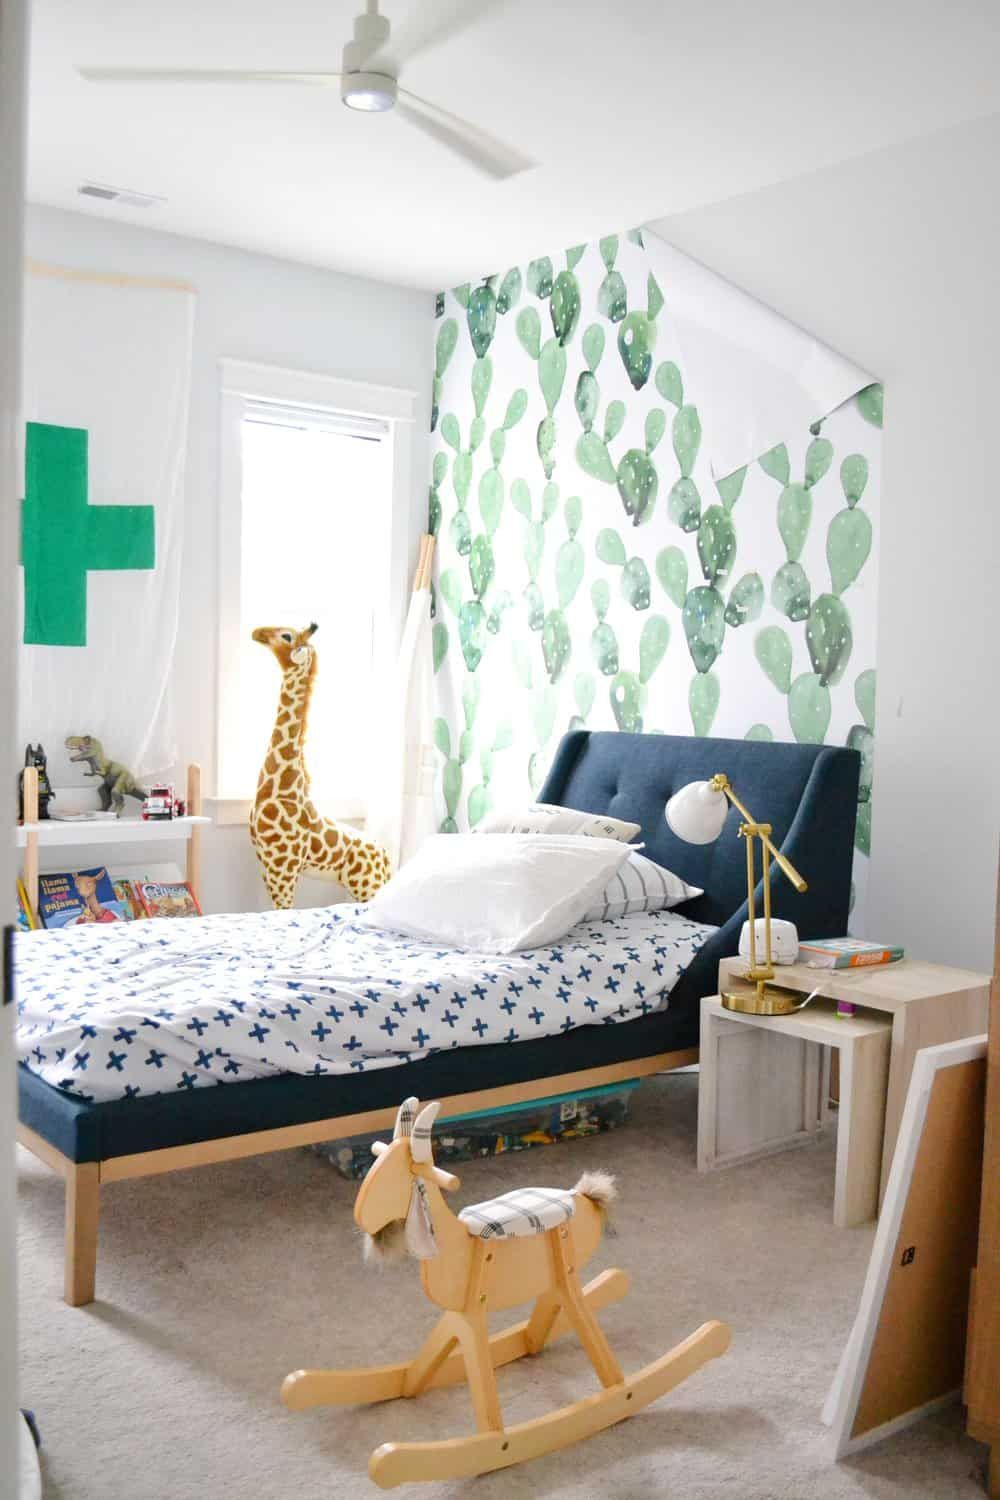 Does Removable Wallpaper Damage Paint In 2020 Wallpaper Living Room Cute Room Decor Room Decor Bedroom